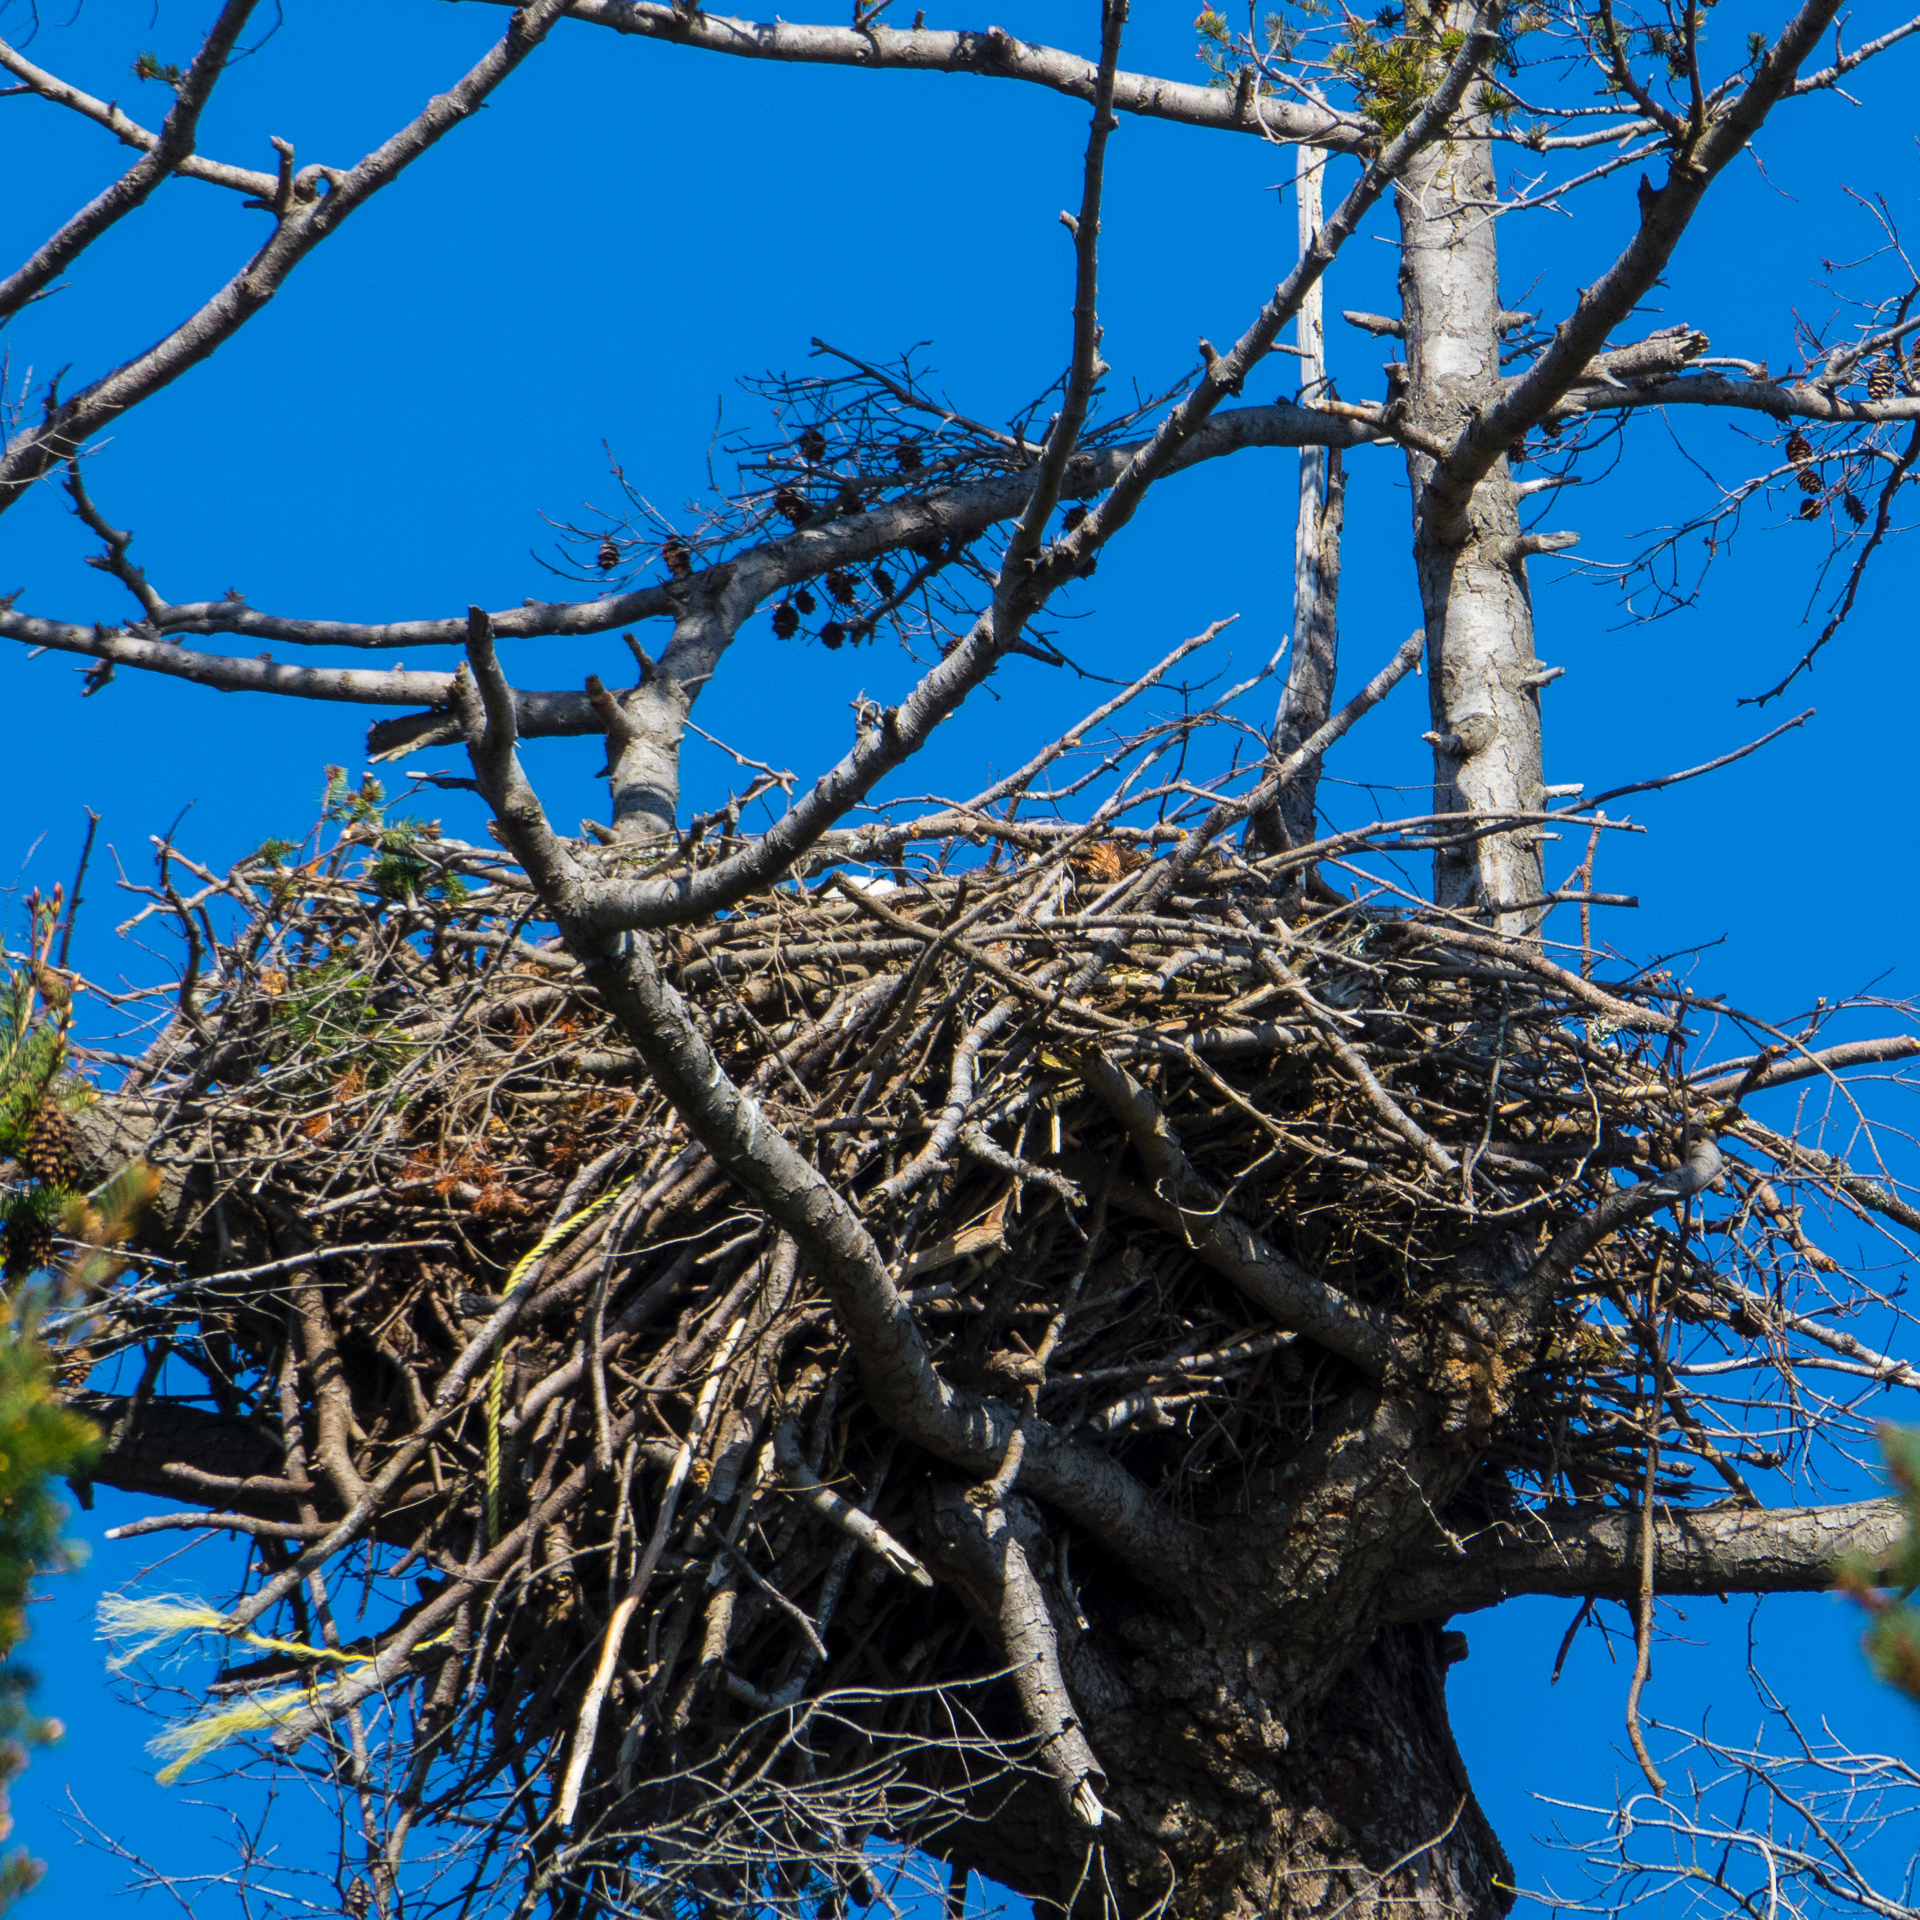 The eagle nest had someone sitting in it…